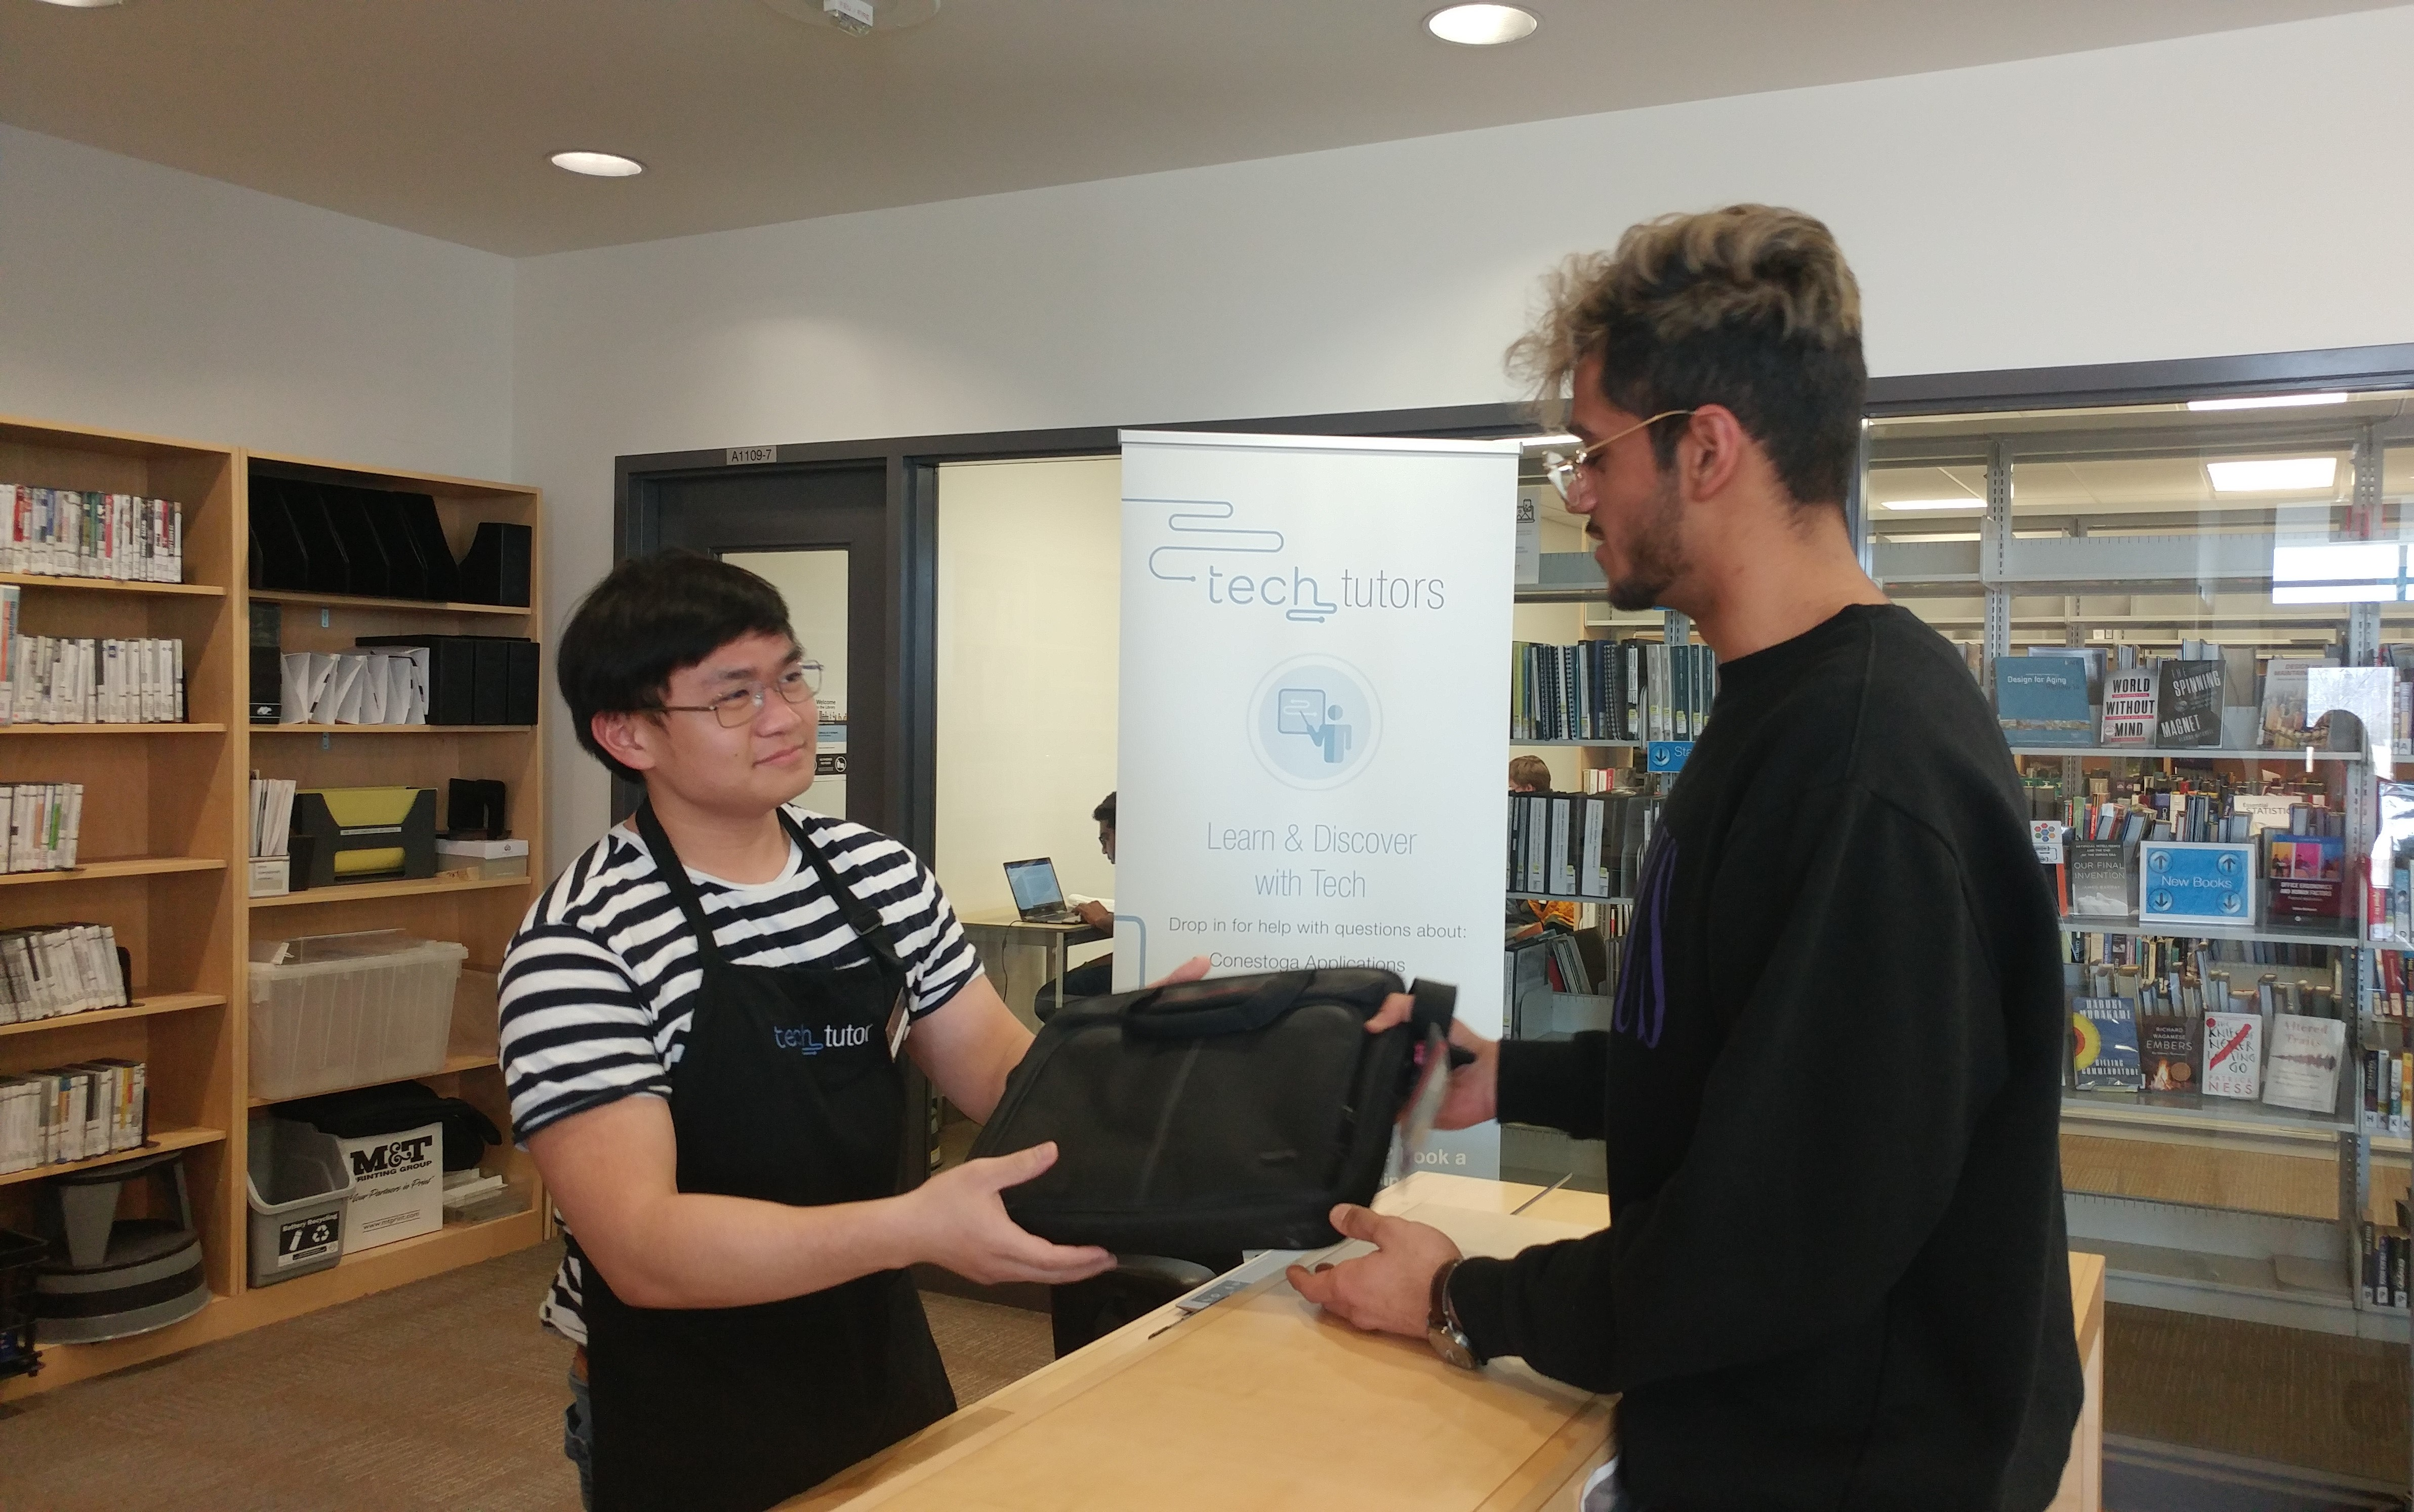 a staff member handing a computer to a student